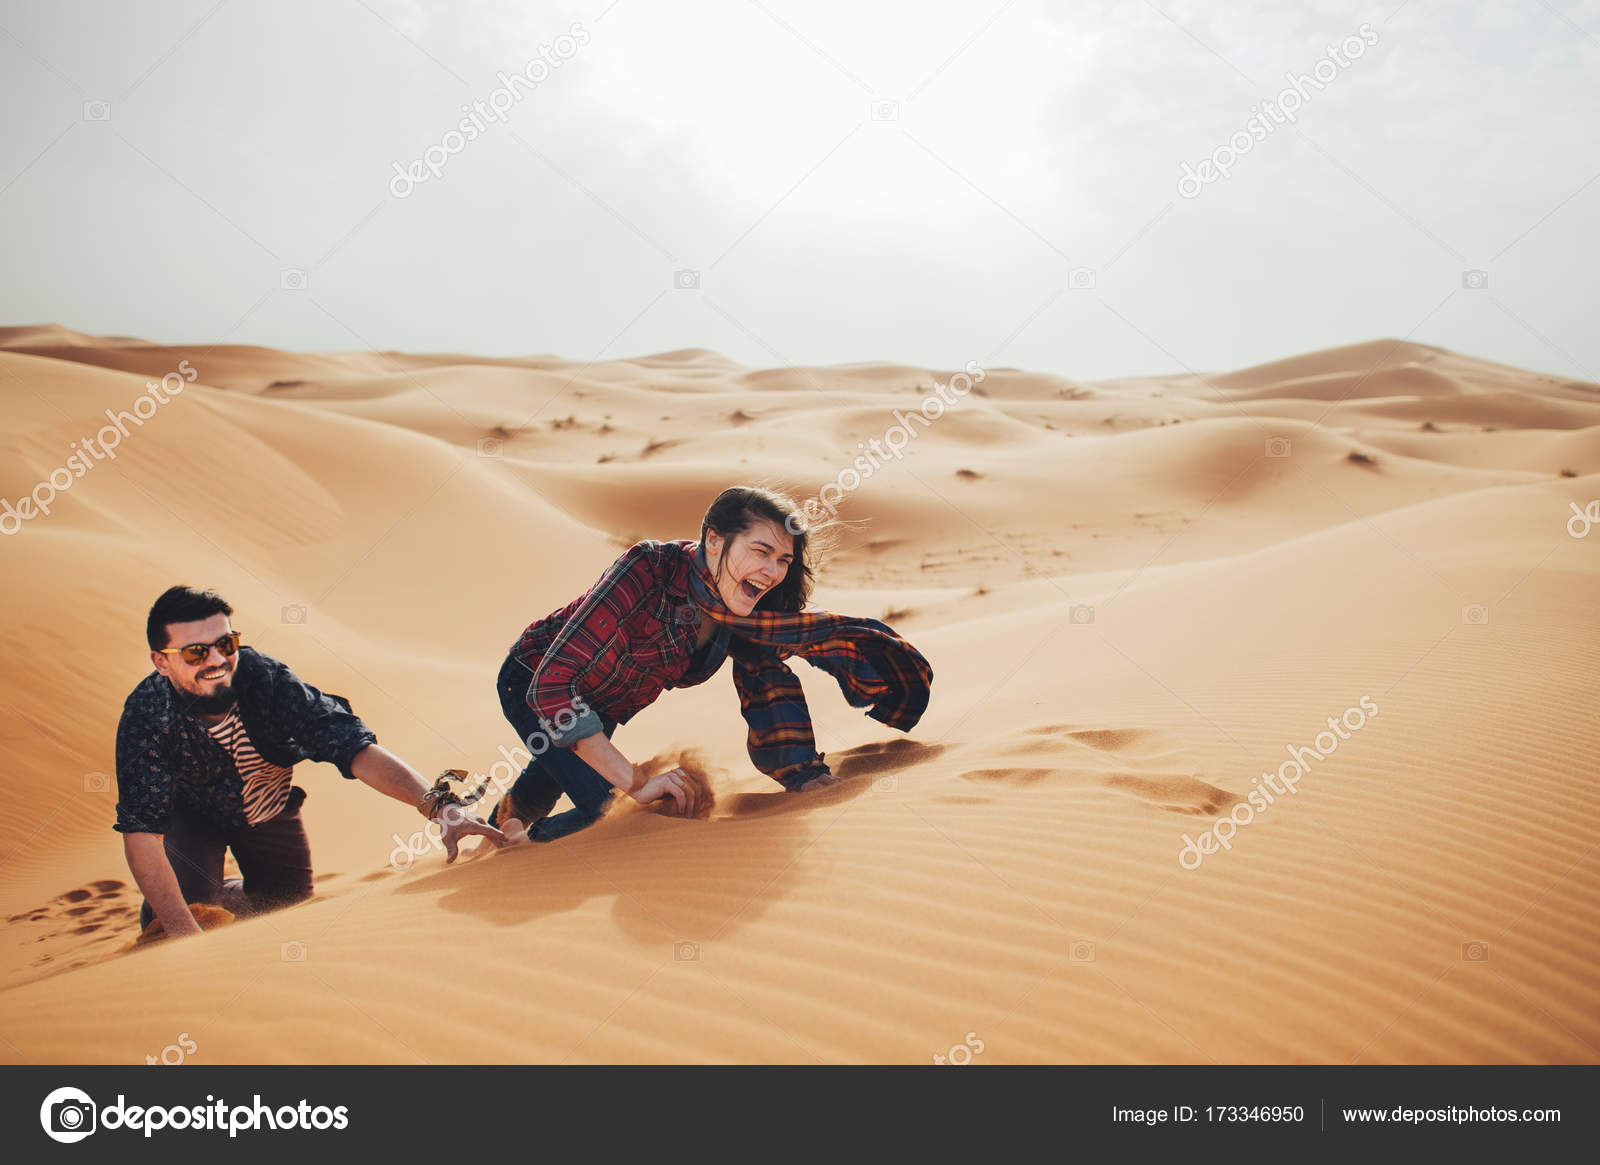 Image of: Desert Sahara Couple Of Travelers In Desert Sahara Stock Image Depositphotos Couple Of Travelers In Desert Sahara Stock Photo Ladanivskyyo